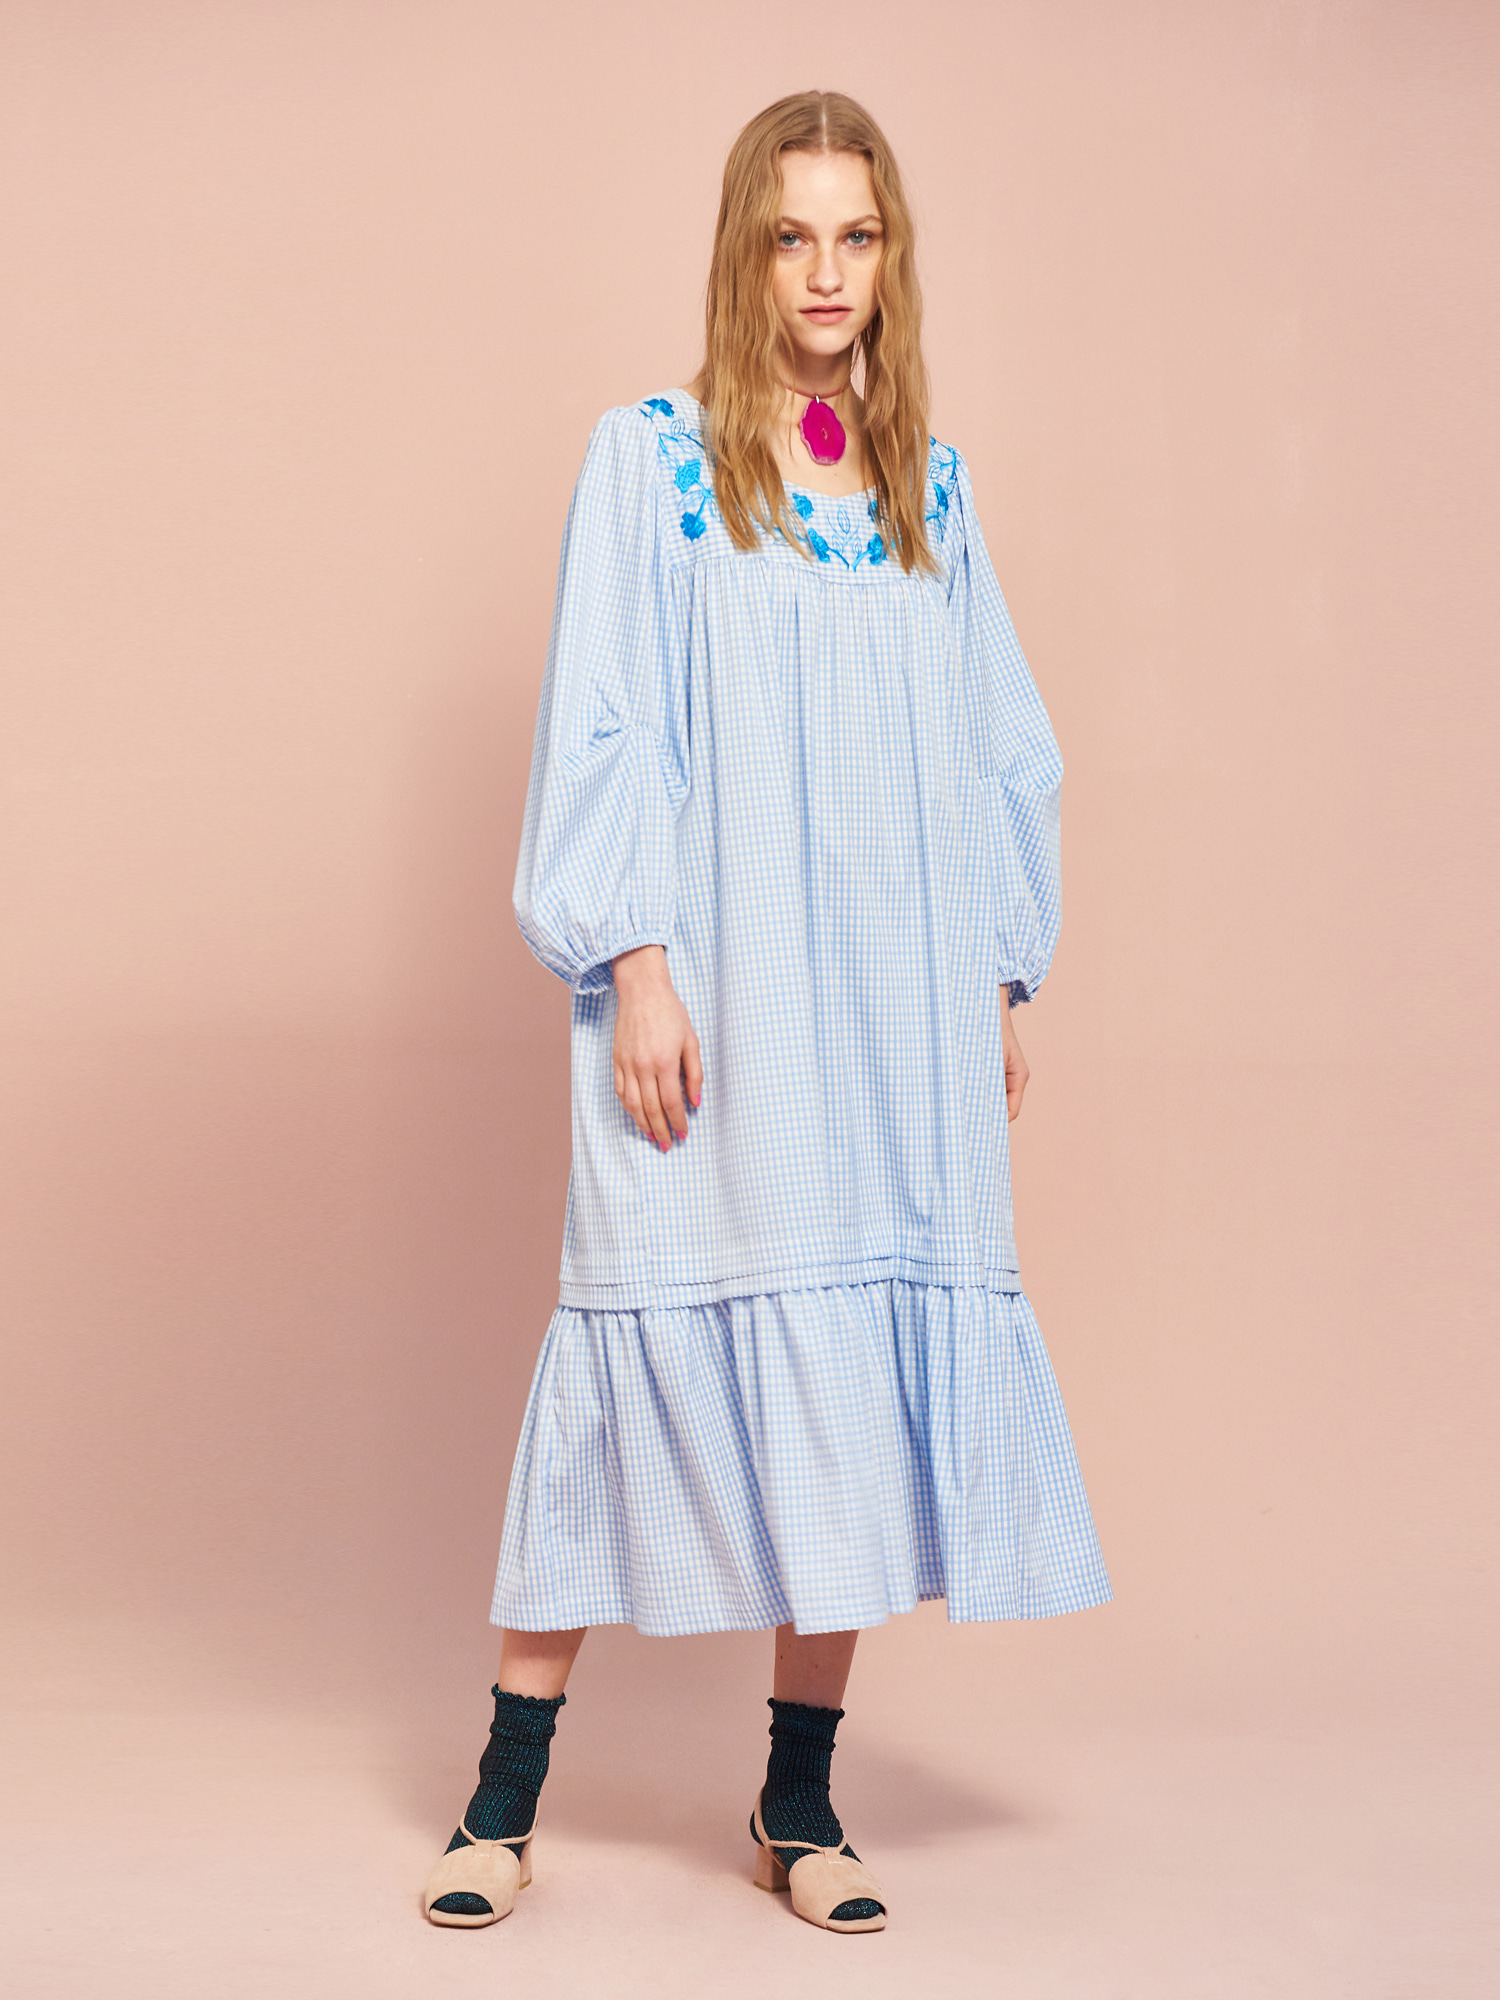 Gingham Embroidery Dress in Sky Blue